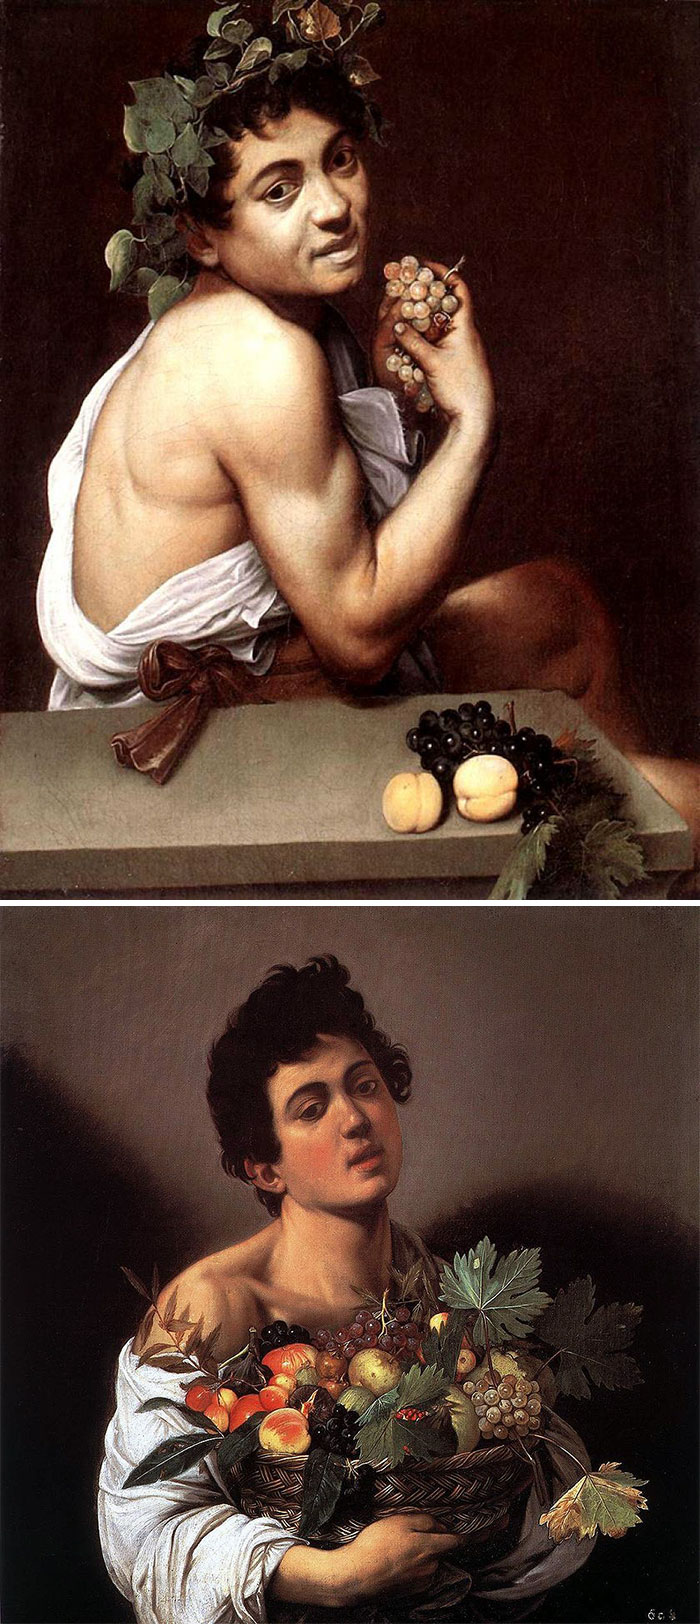 If All The Men Look Like Cow-Eyed Curly-Haired Women, It's Caravaggio